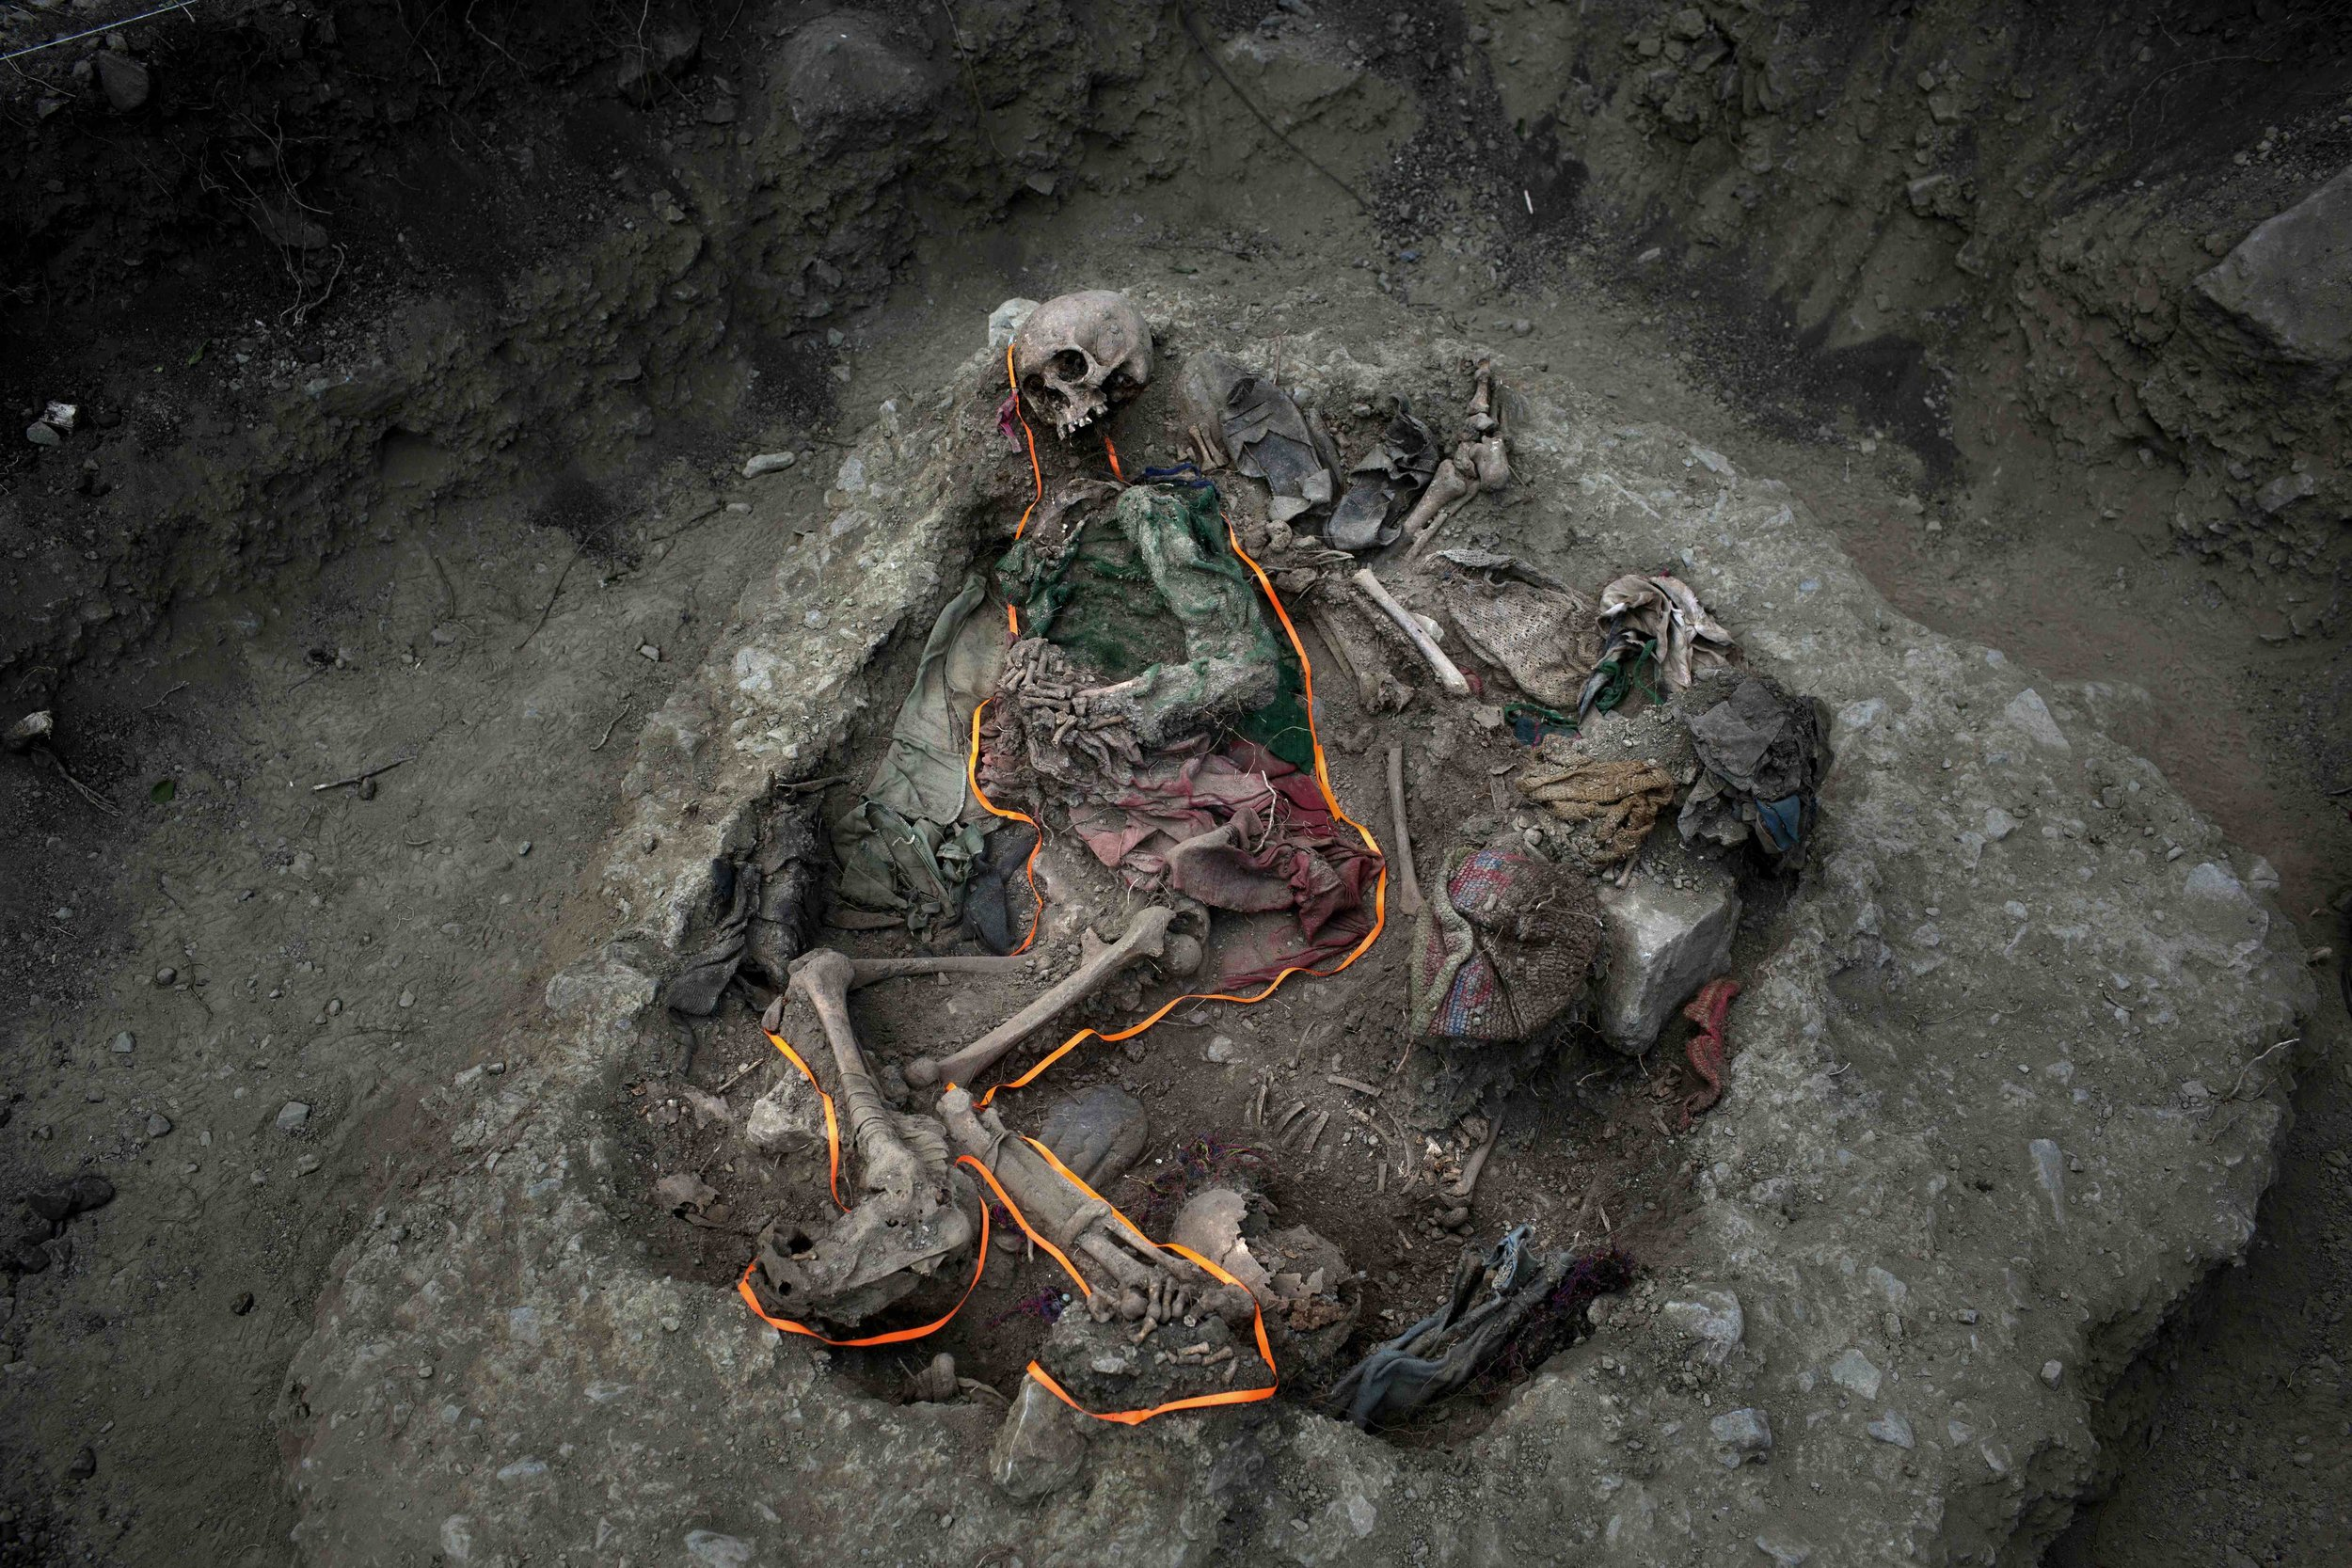 In this Sept. 8, 2014 photo, an orange ribbon outlines skeletal remains in a mass grave, unearthed in the village Paccha of Peru. For three decades, the soil of this unpopulated hamlet on the Andean slopes beside the Apurimac river guarded bodies of villagers slain by security forces who considered them adherents of the Shining Path rebels. (AP Photo/Rodrigo Abd)